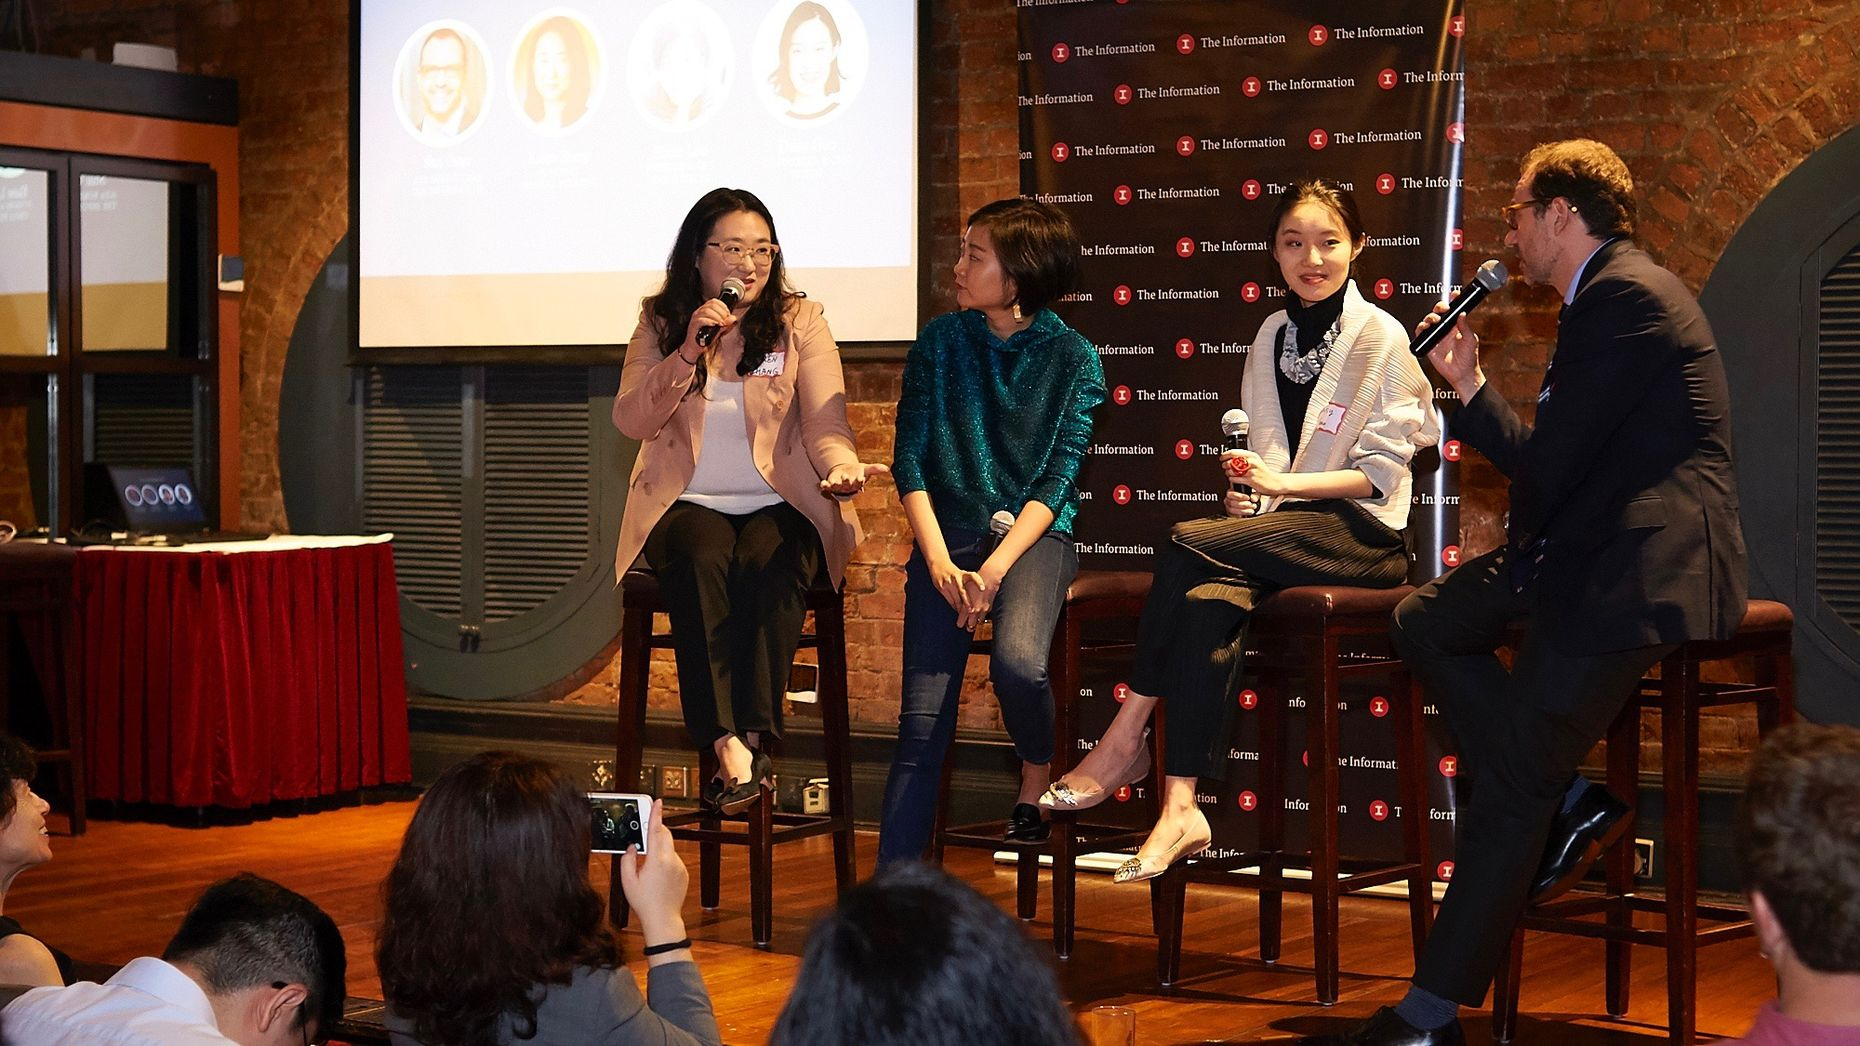 Karen Zhang, Elaine Lou and Daisy Guo at The Information's Hong Kong Subscriber Summit earlier this week, with The Information's Shai Oster. Photo by Brent Pottinger